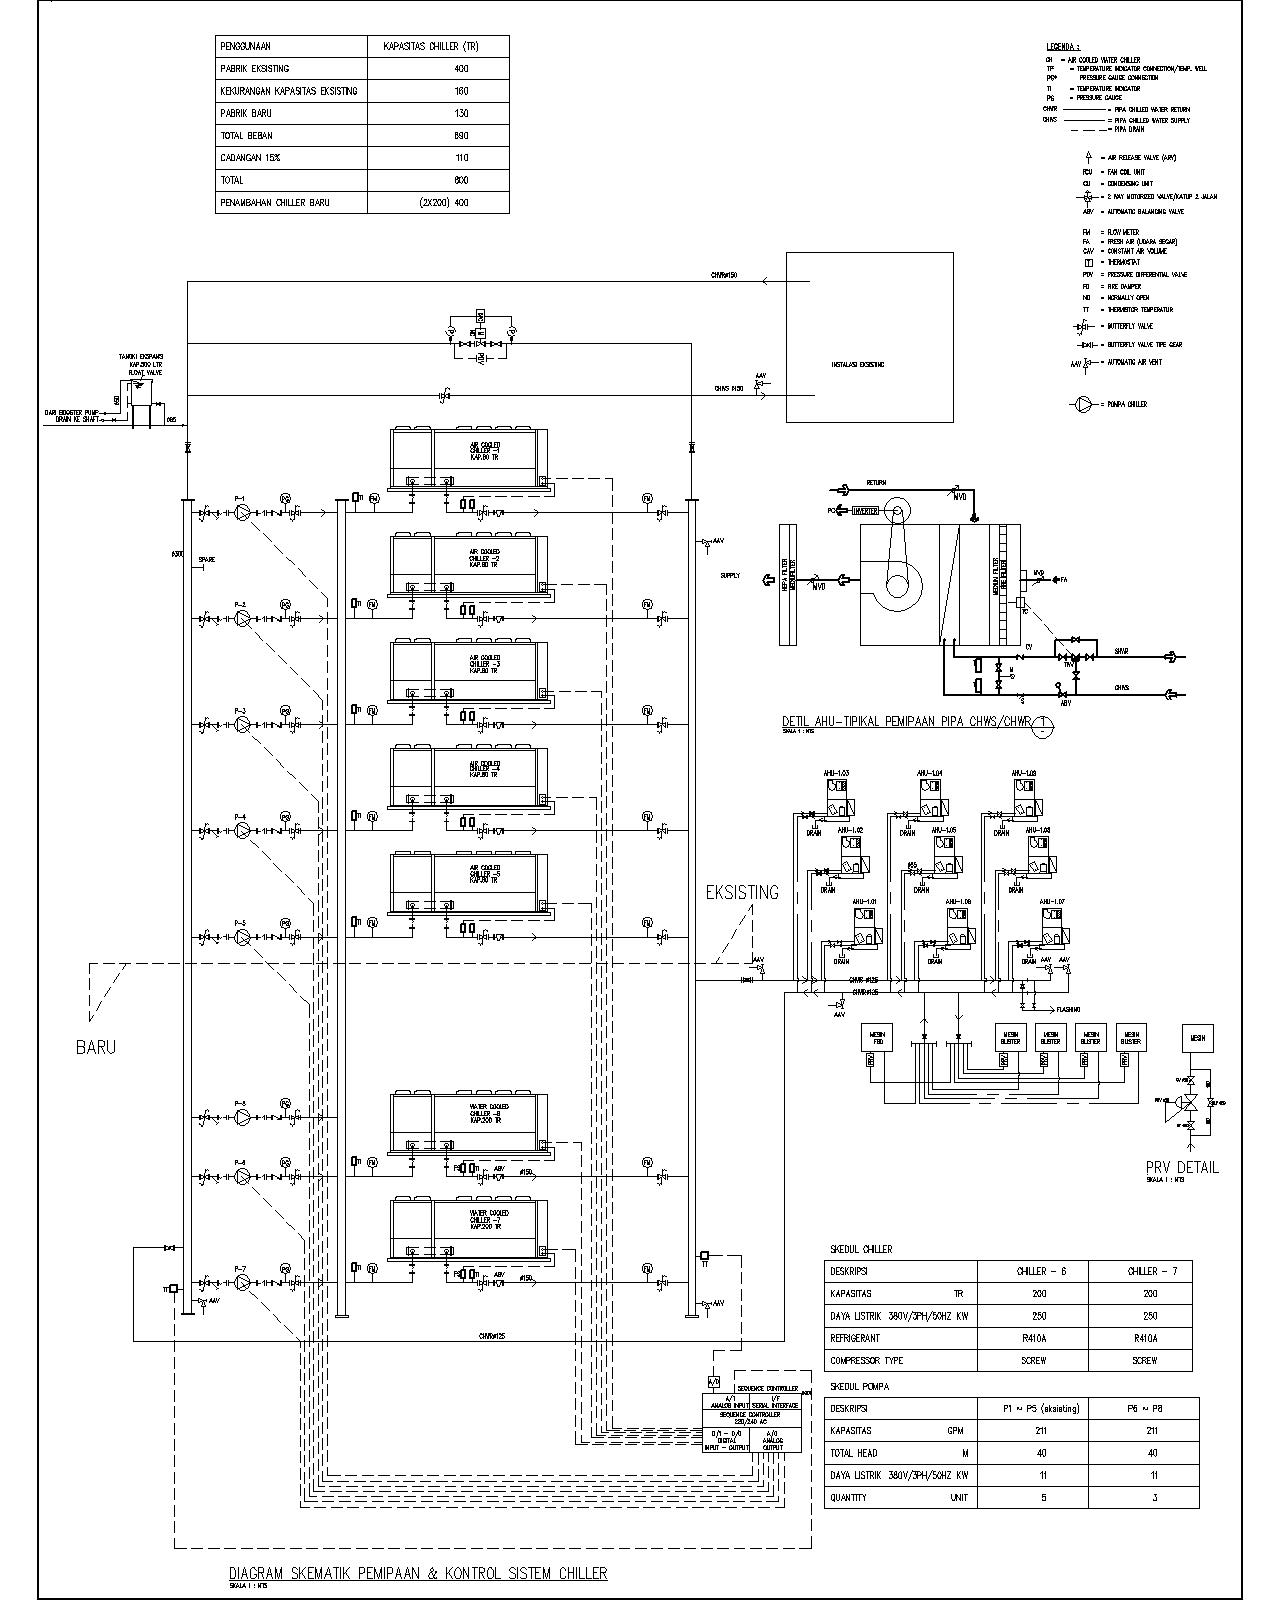 Piping Drawing At Free For Personal Use Instrumentation Diagram Tutorial 1280x1600 Building Utilities Water Cooled Chiller Schematic